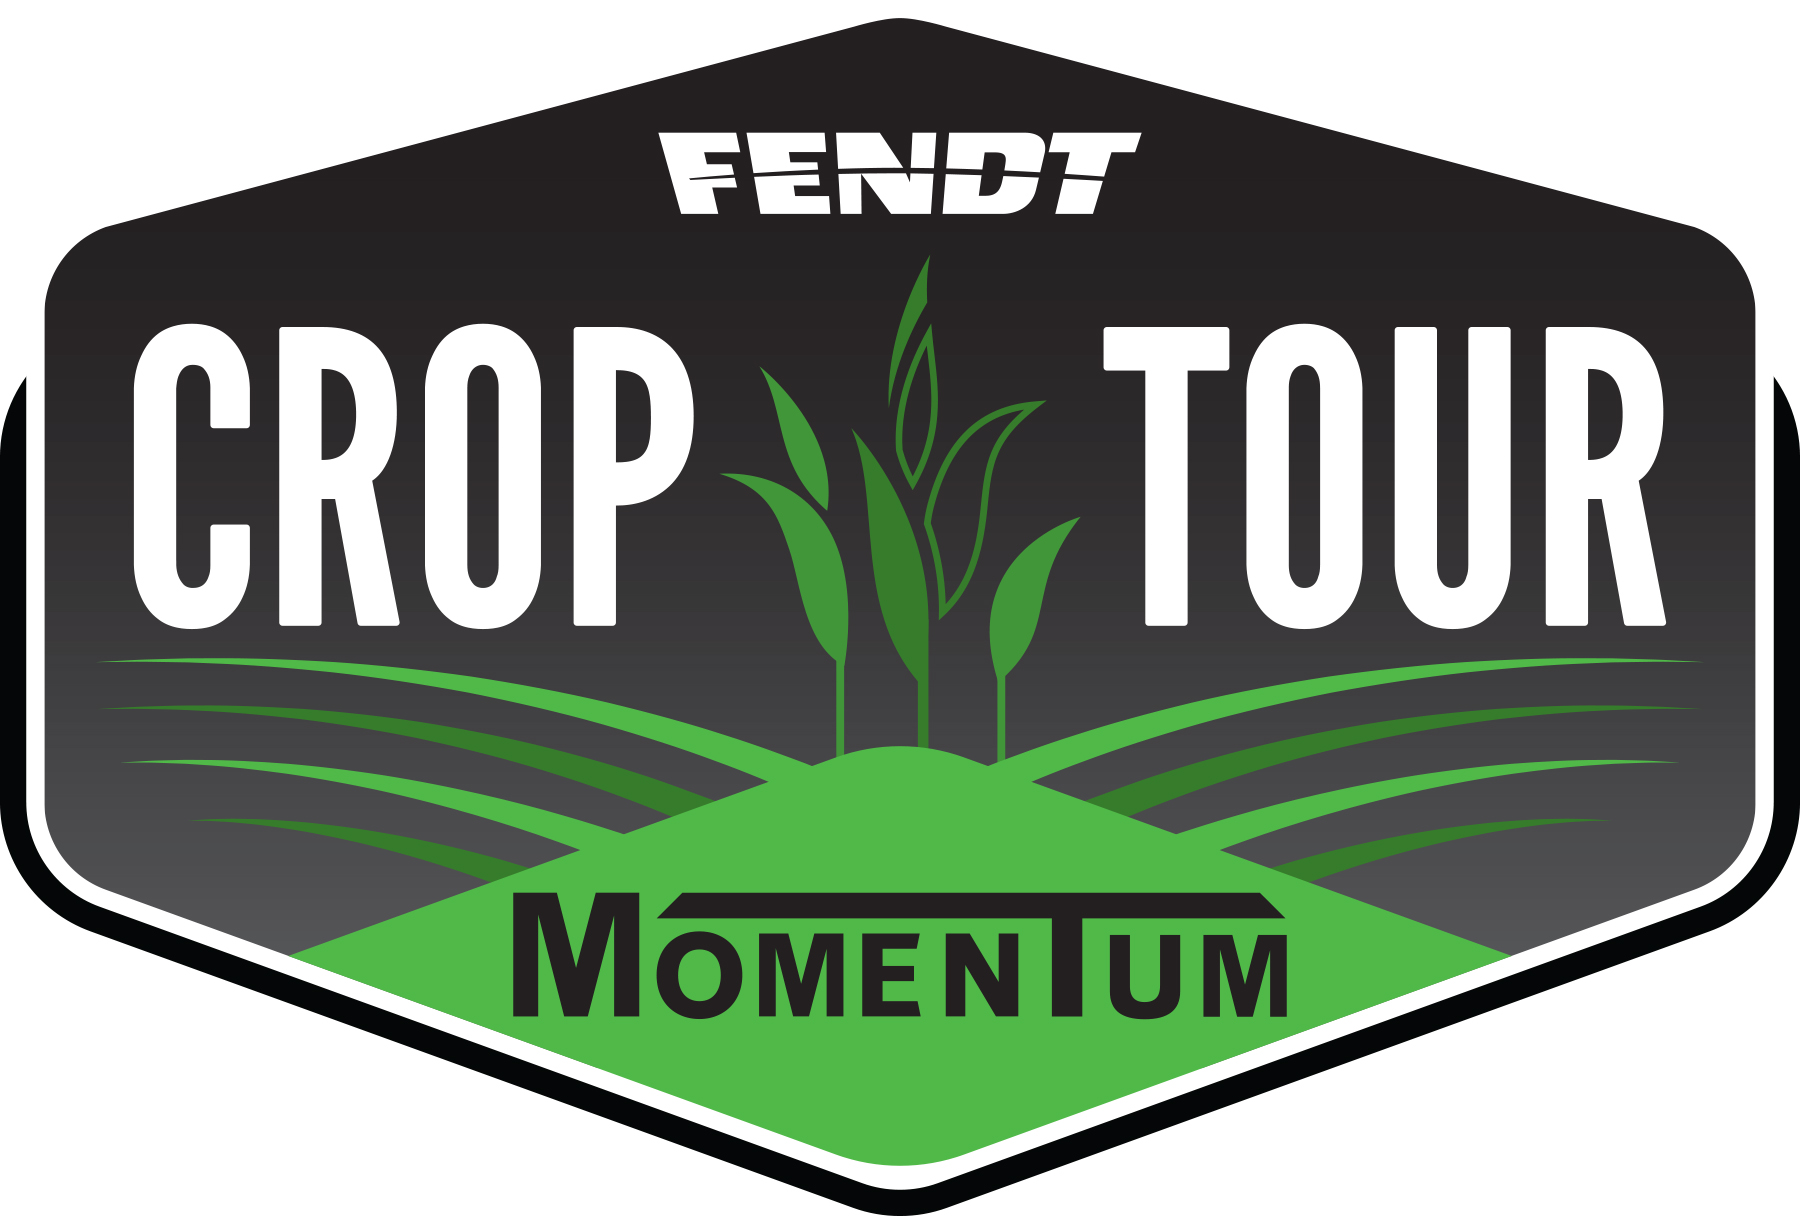 crop-tour-logo-fendt-momentum-branded